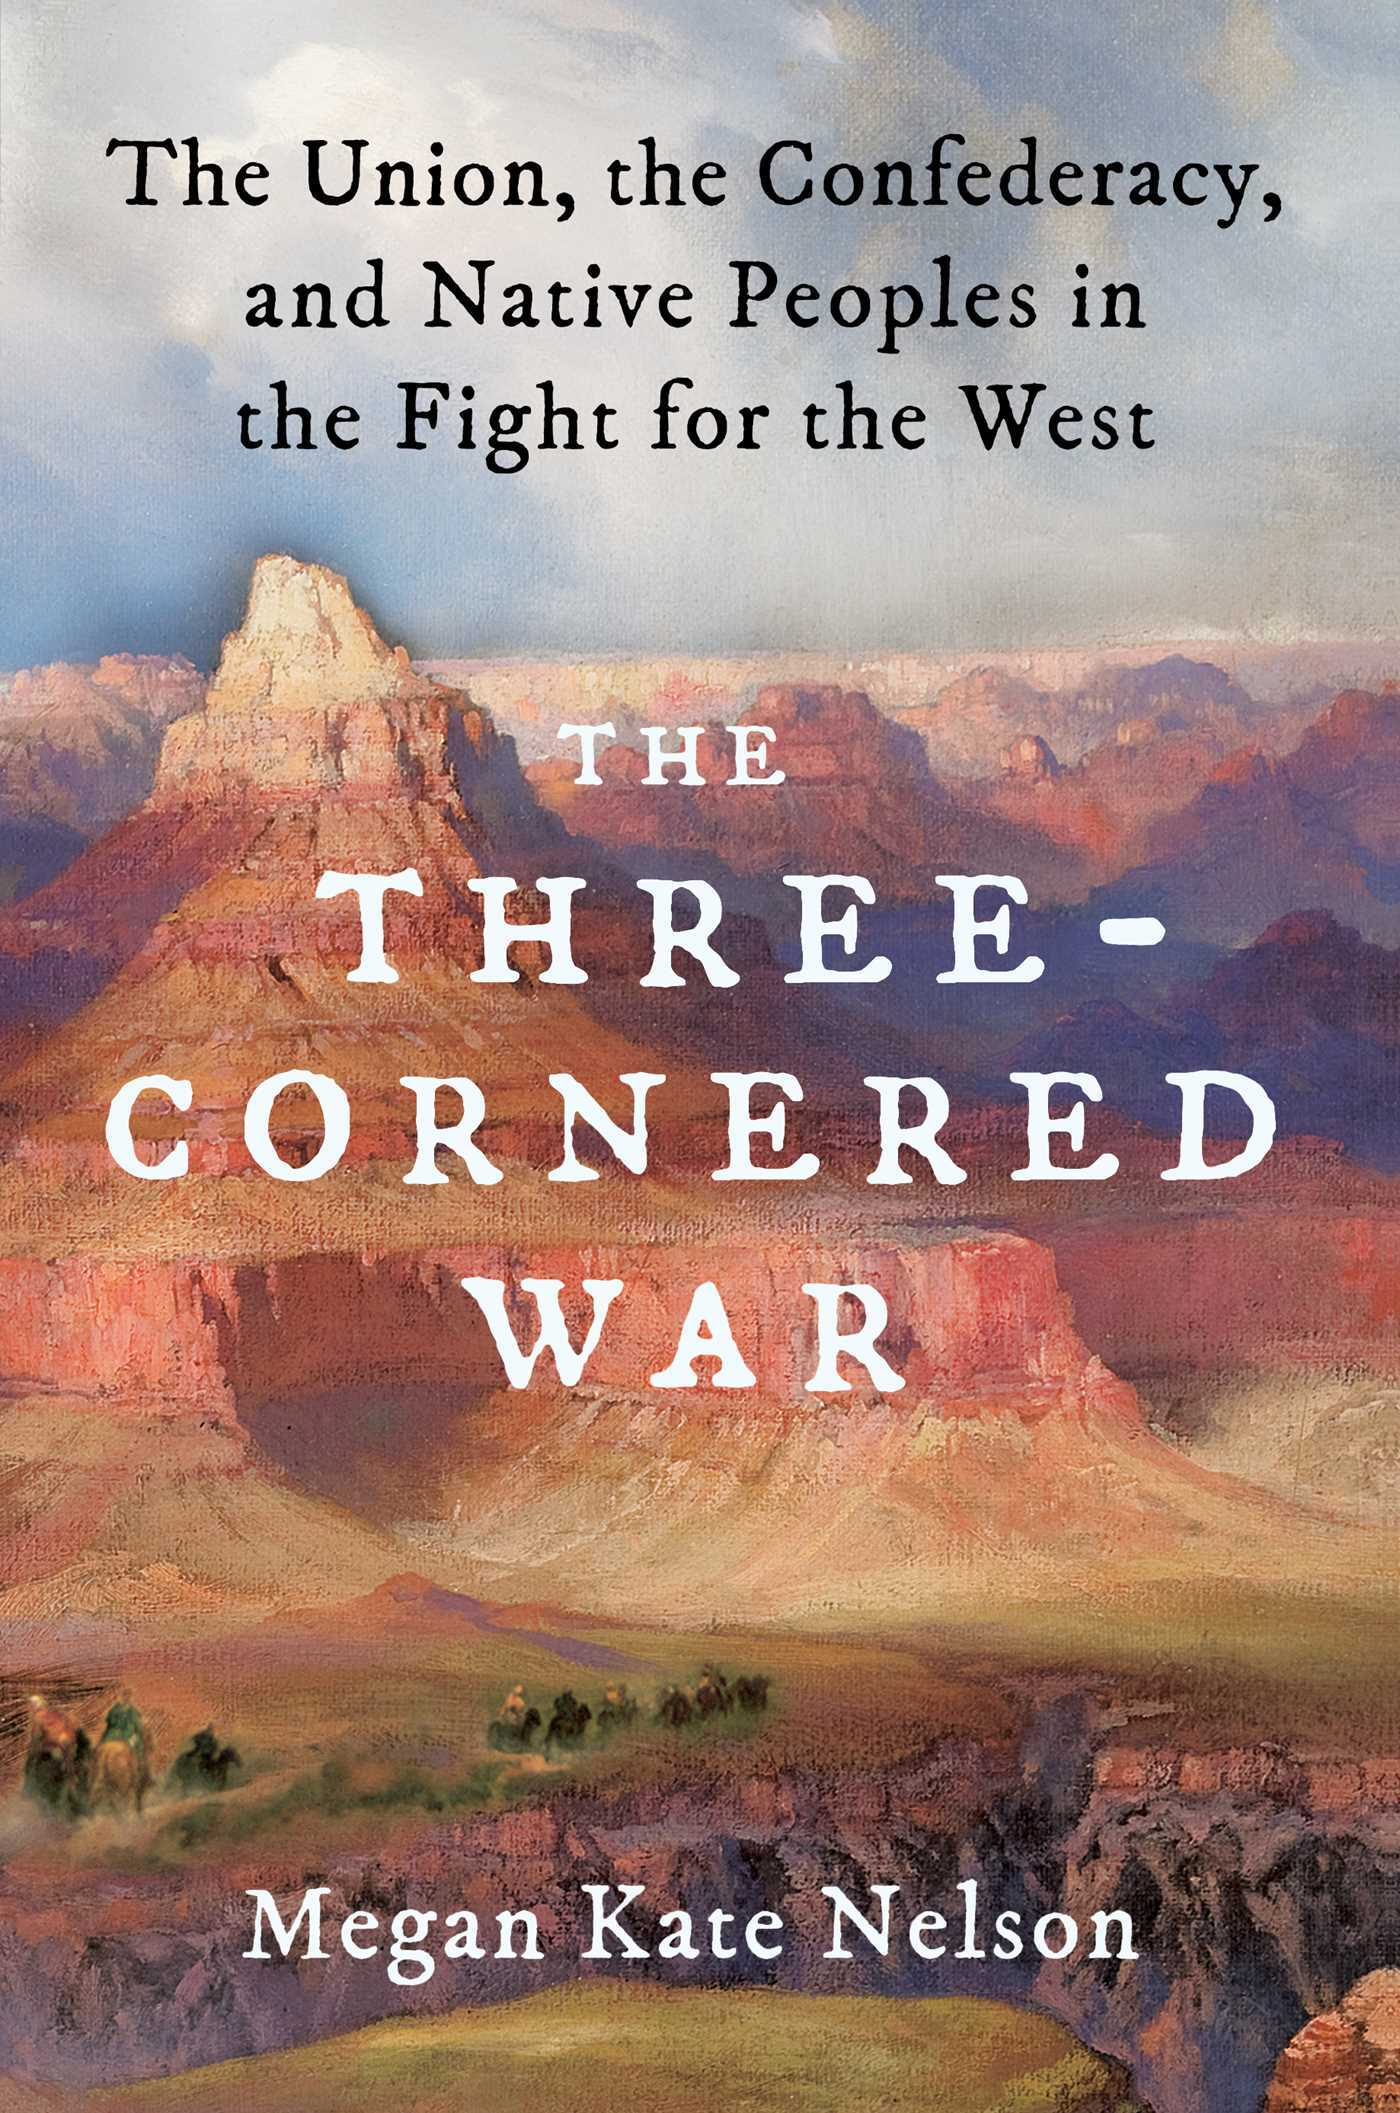 Book cover - The Three-Cornered War: The Union, the Confederacy, and Native Peoples in the Fight for the West